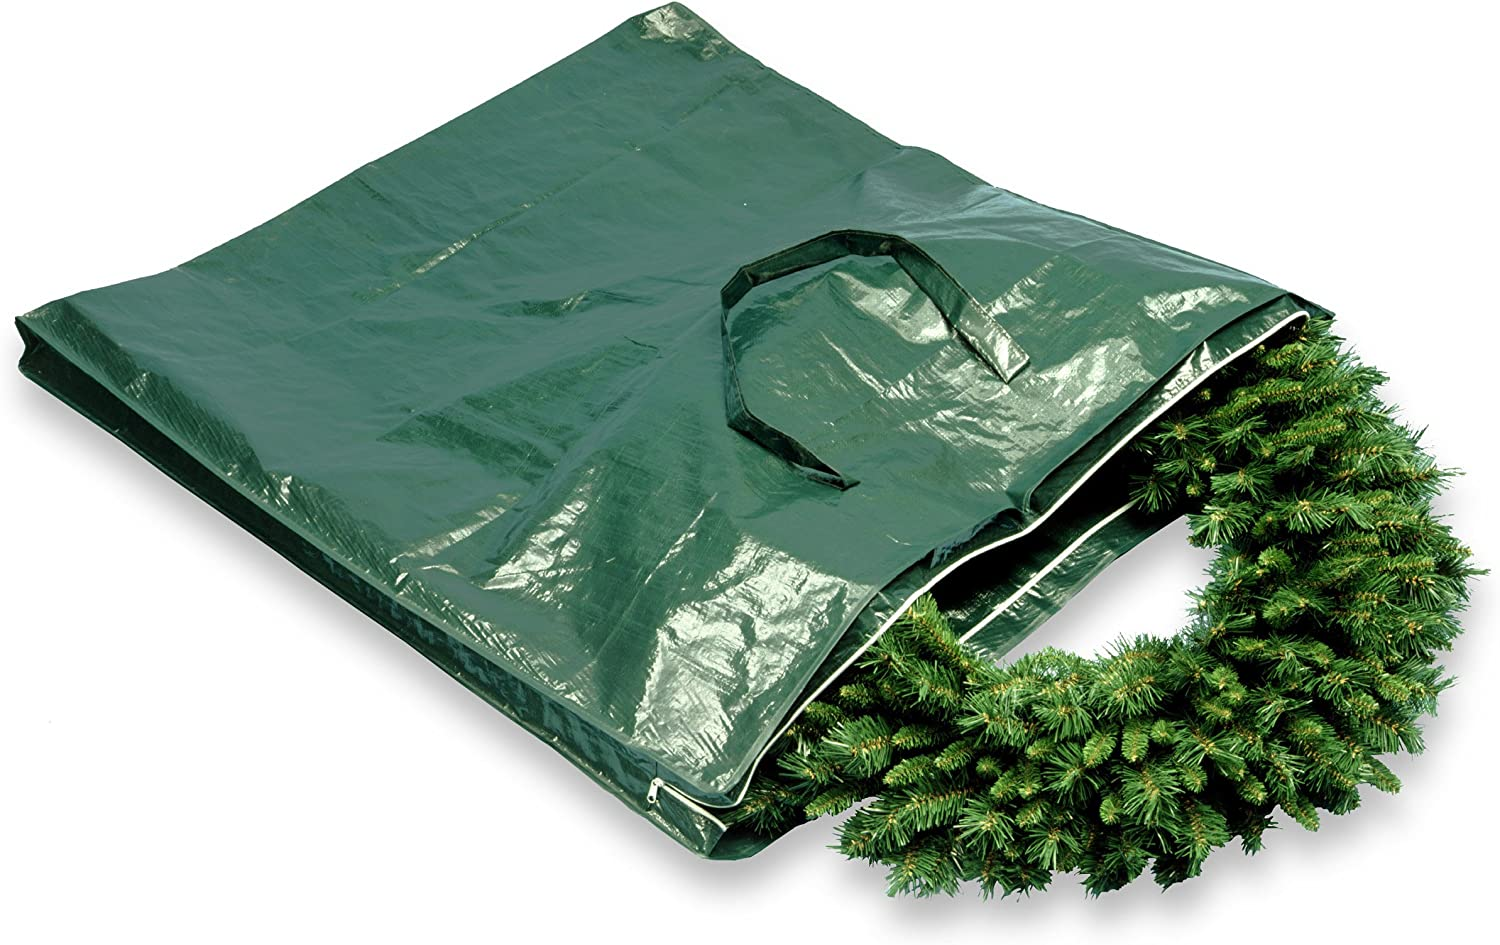 National Tree Heavy Duty Wreath and Garland Storage Bag with Handles and Zipper, Fits up to 4 Foot (S-A-WBAG1)